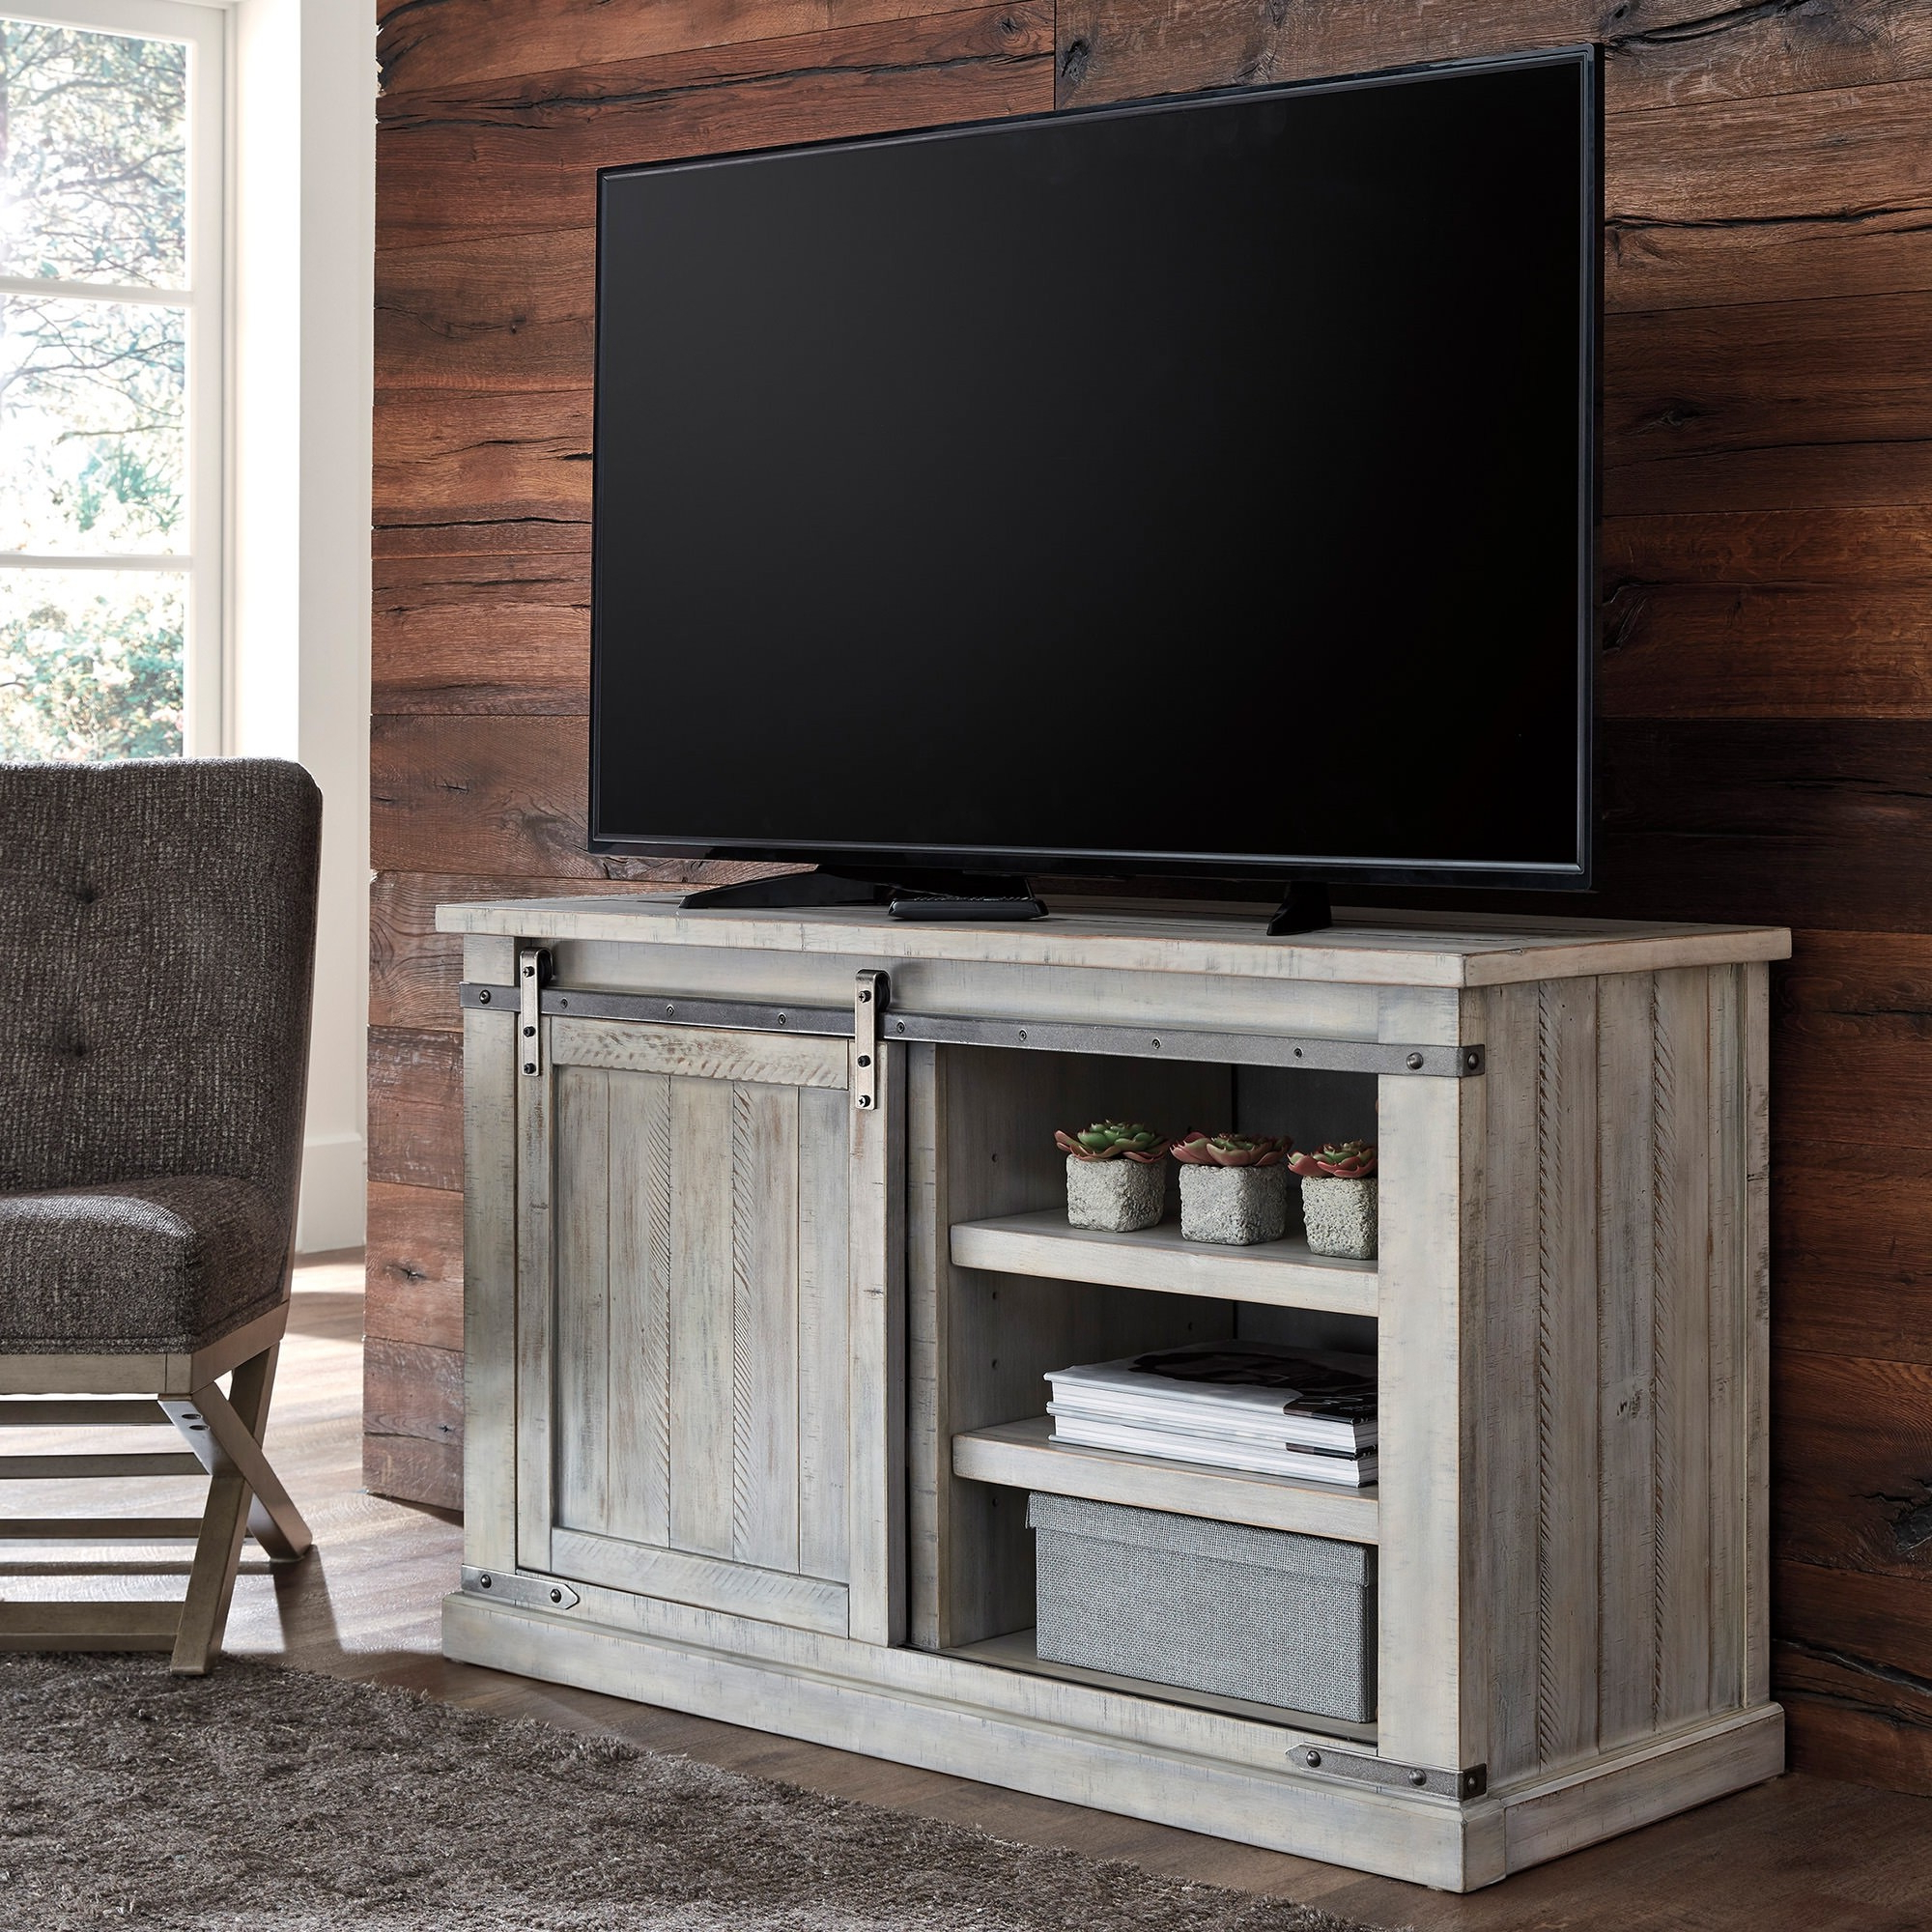 """Carynhurst Medium 50 Inch Tv Stand – Bernie & Phyl's Throughout Virginia Tv Stands For Tvs Up To 50"""" (View 8 of 20)"""